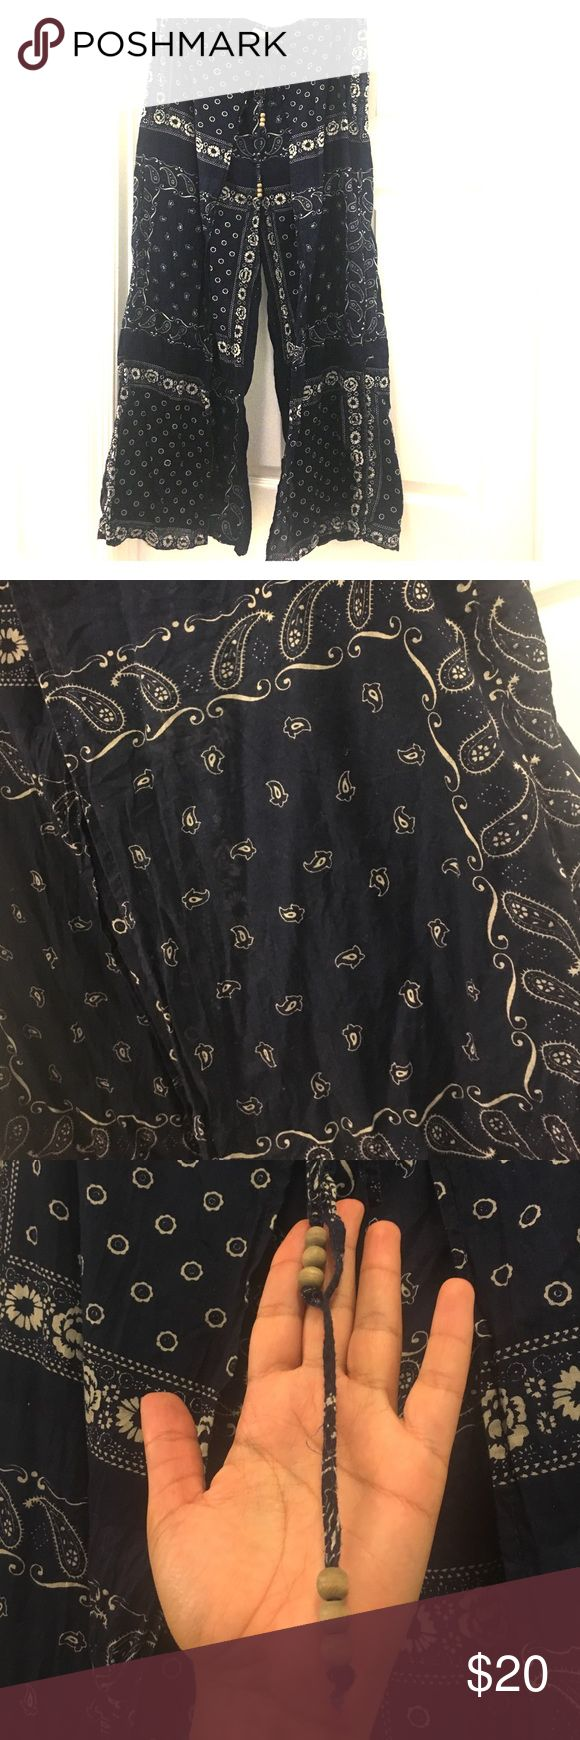 """Ralph Lauren Denim & Supply Palazzo Pant Bandana themed palazzo pant by Denim & Supply.  Slowly pant with navy and white Banda print all over.  Elastic and tie waist closure that includes wooded bead accents.  Inseam 27"""".  Measures 39"""" from waist to hem. Denim & Supply Ralph Lauren Pants Wide Leg"""